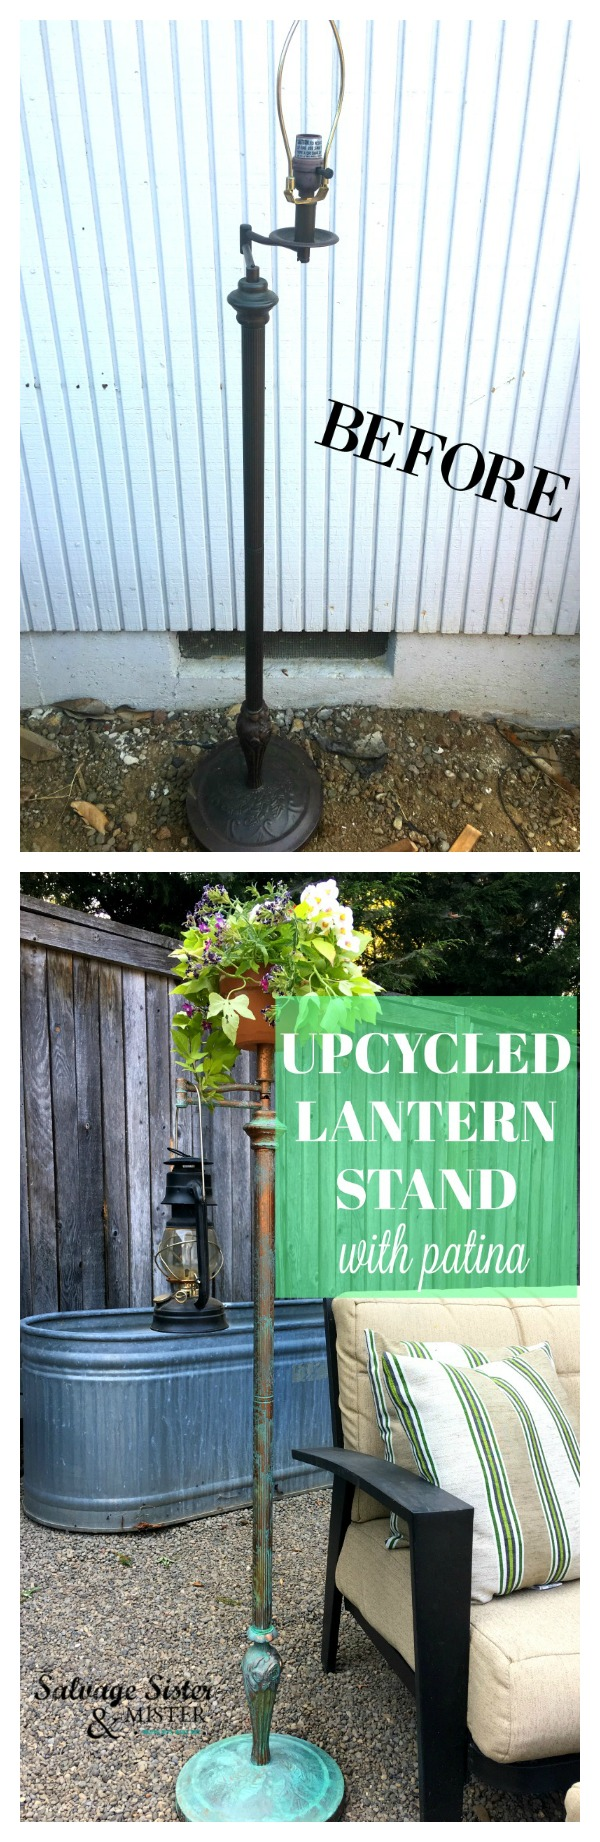 Got a free arm lamp and turned it into an upcycled lantern stand with patina for our backyard.  This was a simple diy project that took hardly anytime or supplies and is budget friendly. #repurpose #reuse #patina #upcycle found on salvagesisterandmister.com